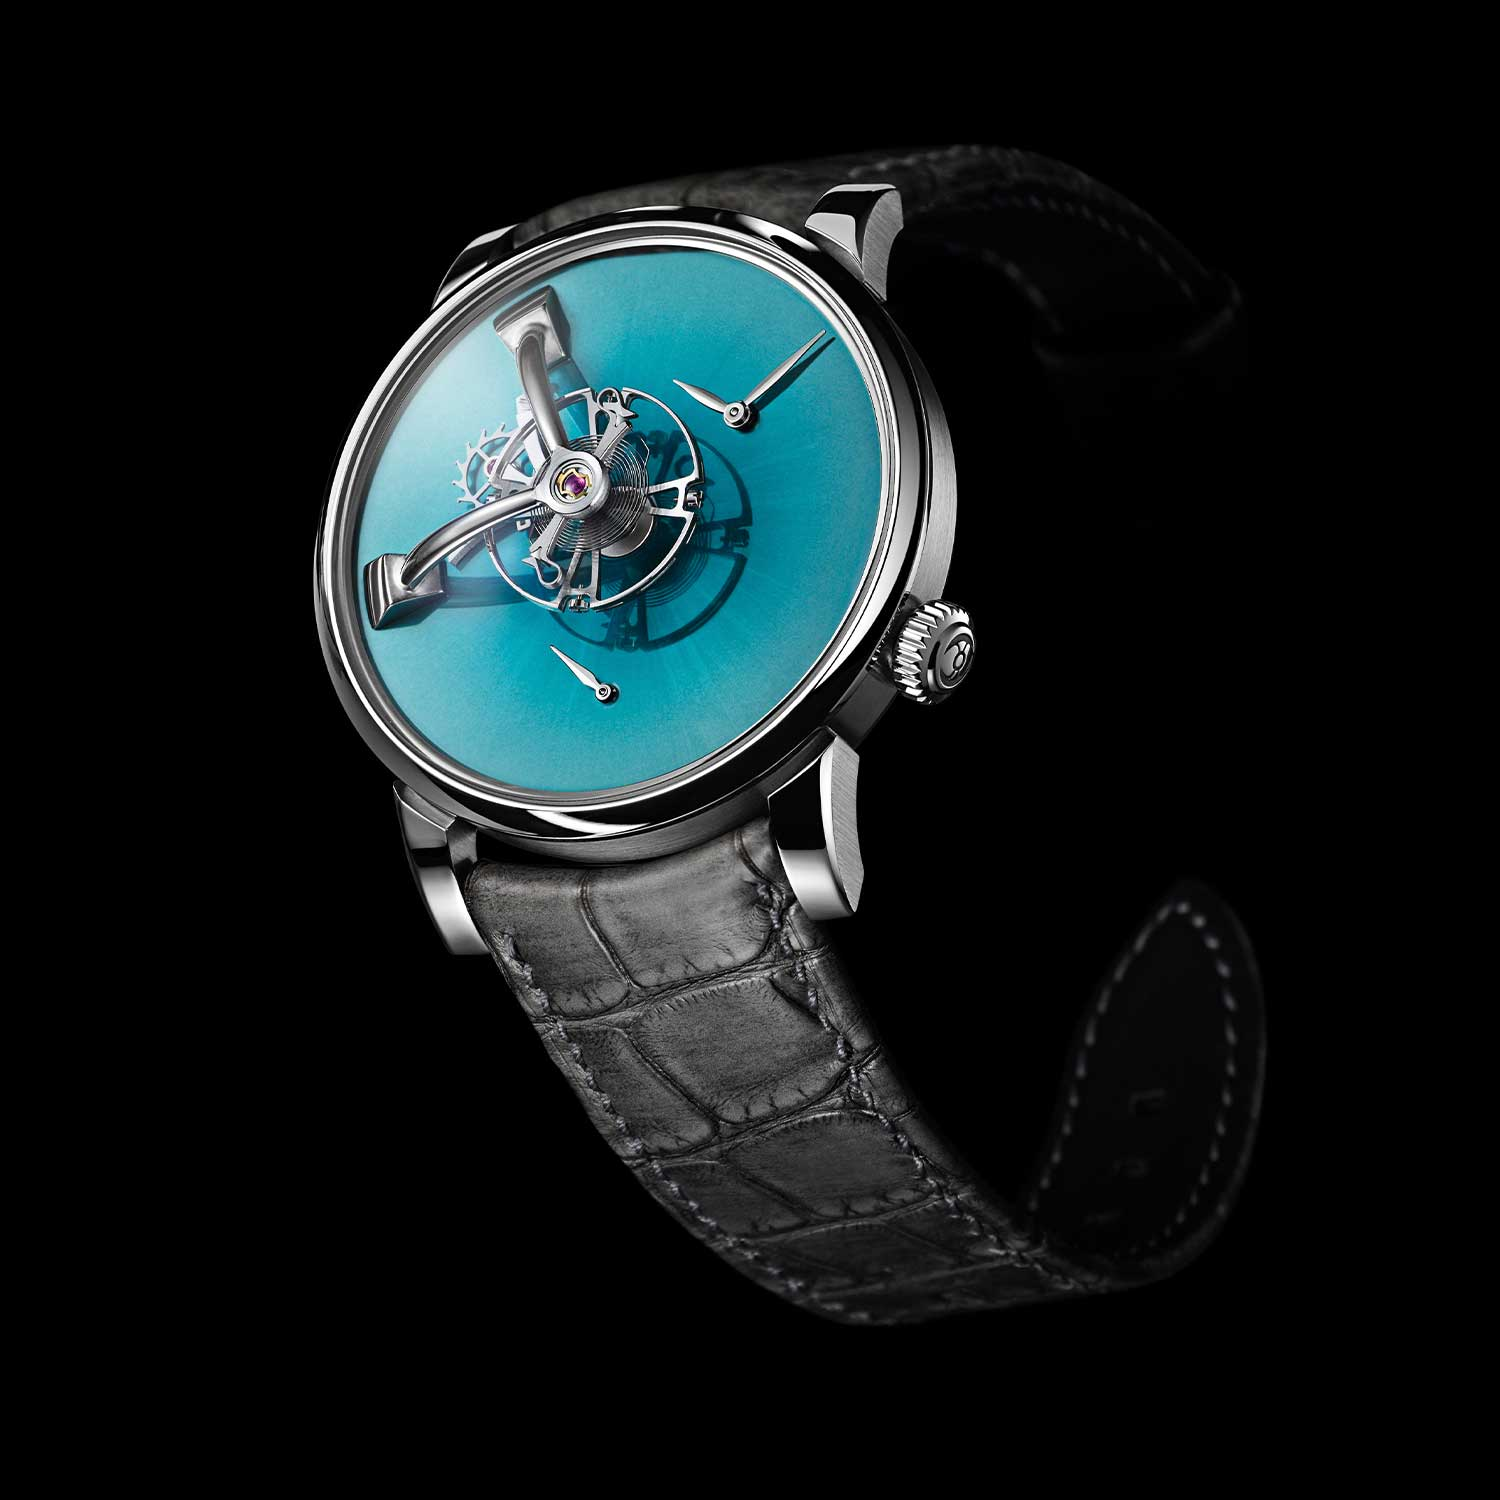 MB&F × H. Moser LM101 in Yas Marina Blue (only available with Ahmed Seddiqi & Sons)